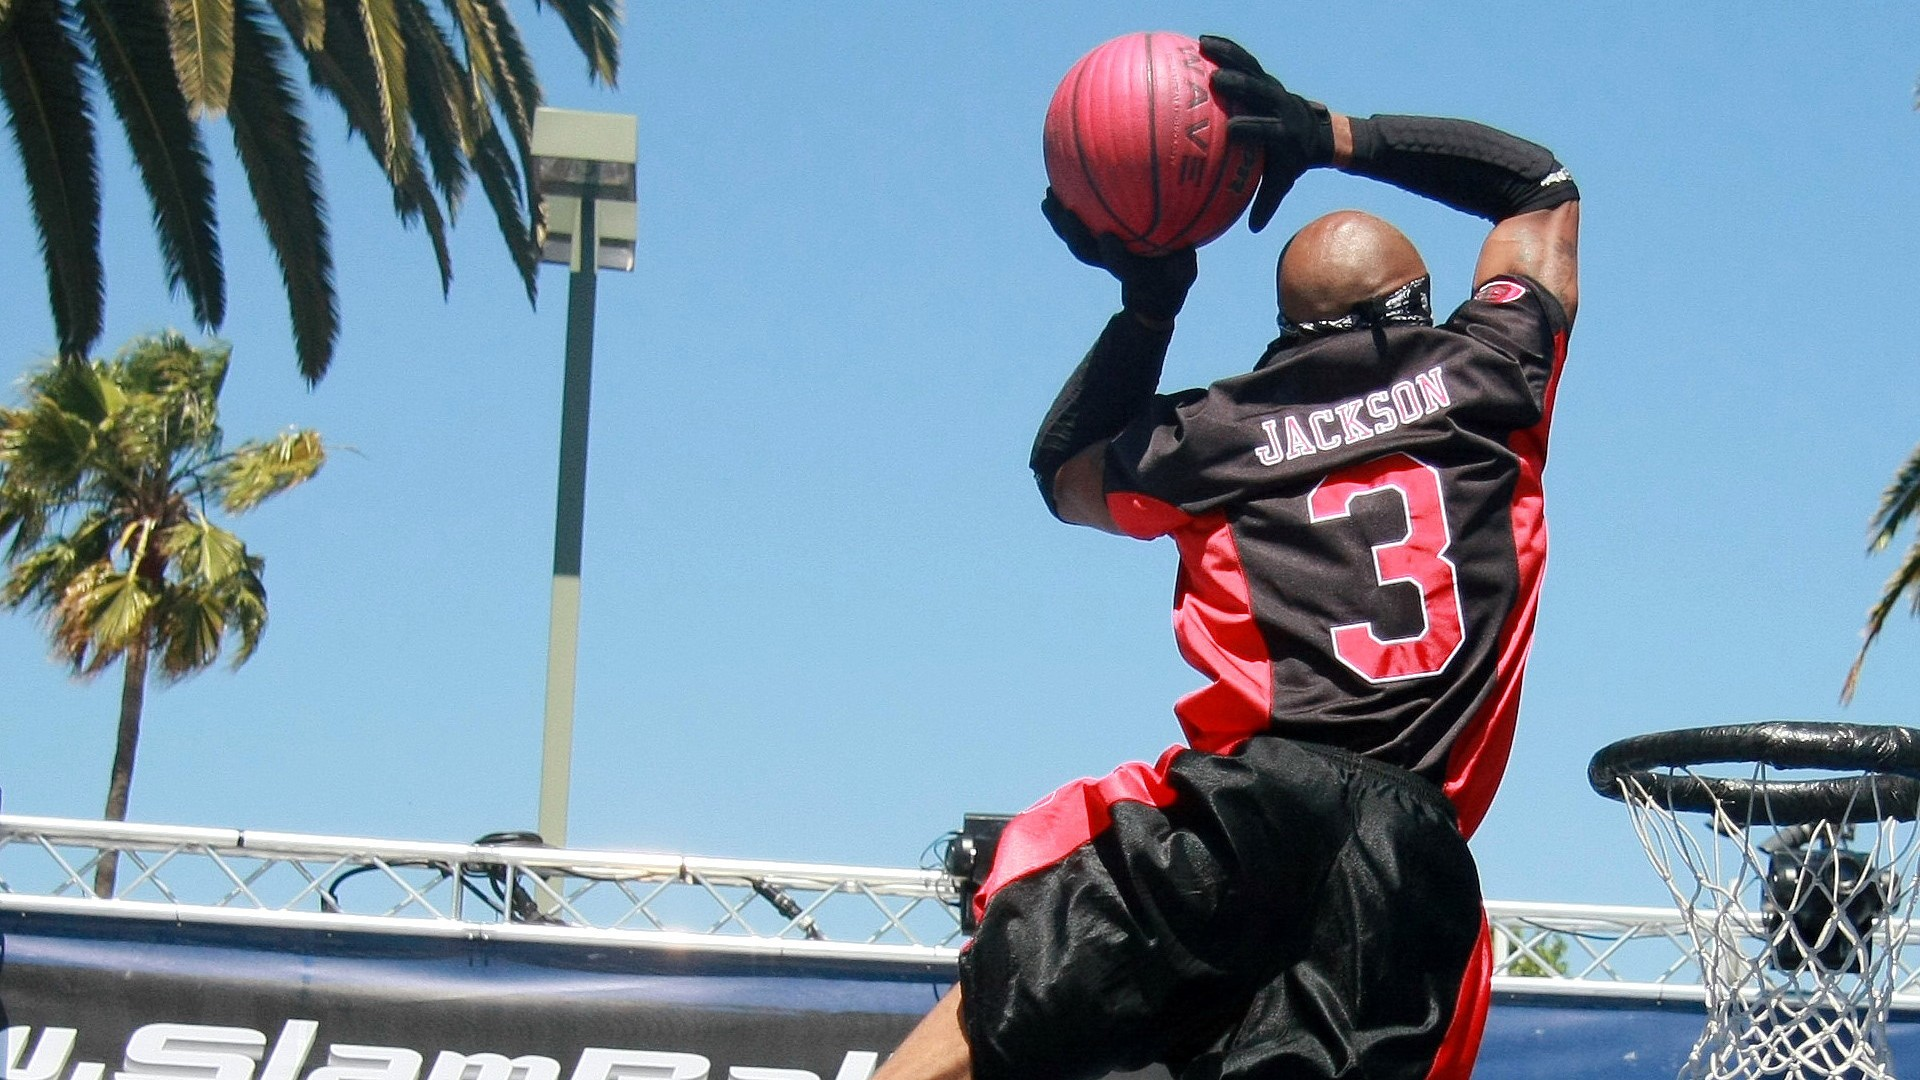 SlamBall is Alive in China